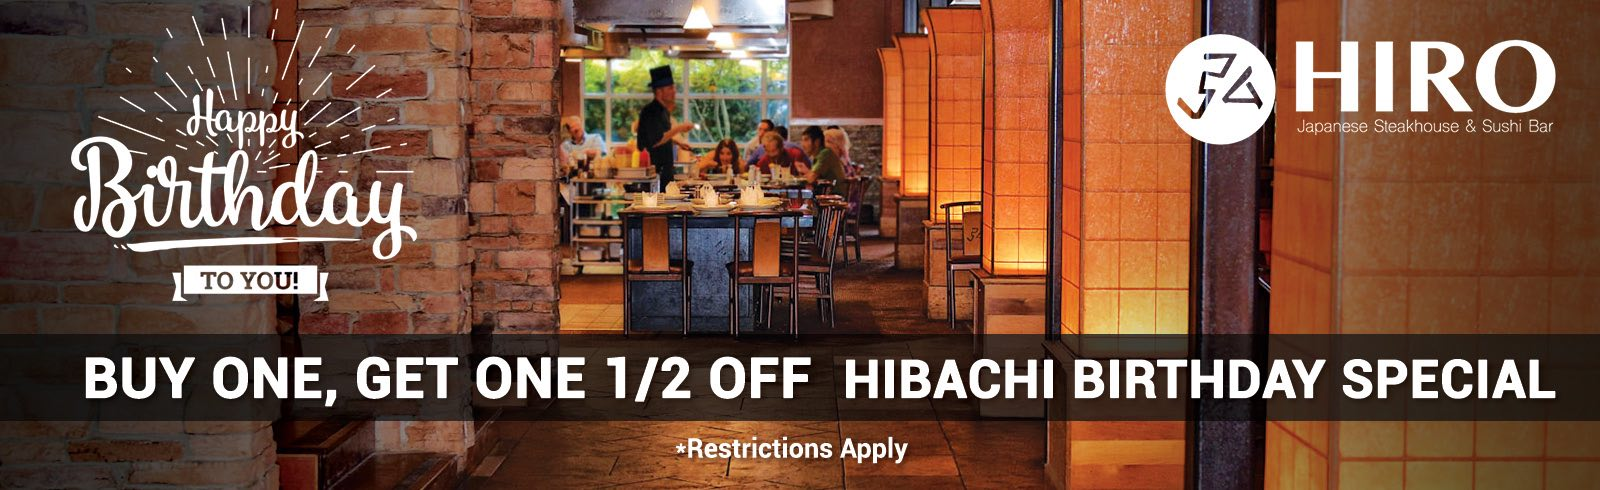 Visit Us On Your Birthday For Our Buy One, Get One 1/2 off Hibachi Special